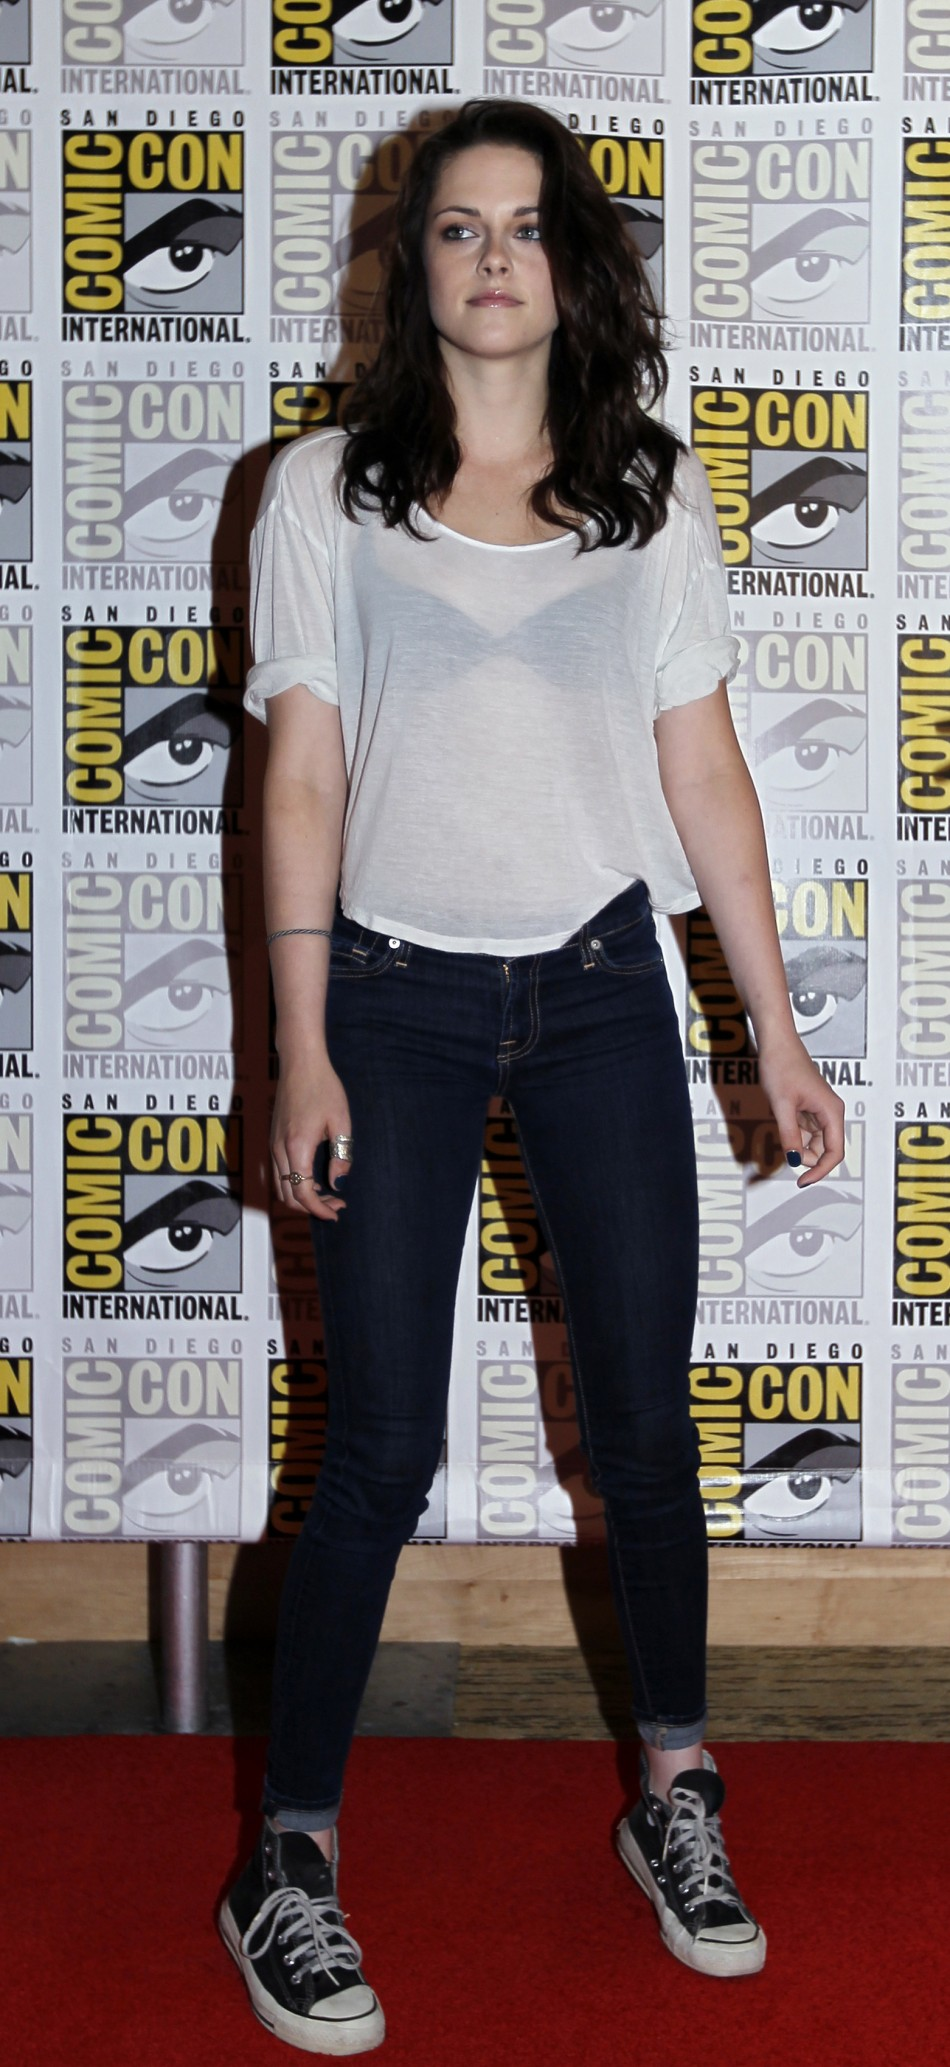 Actress Kristen Stewart poses to promote quotBreaking Dawnquot from the Twilight Saga at Comic Con in San Diego